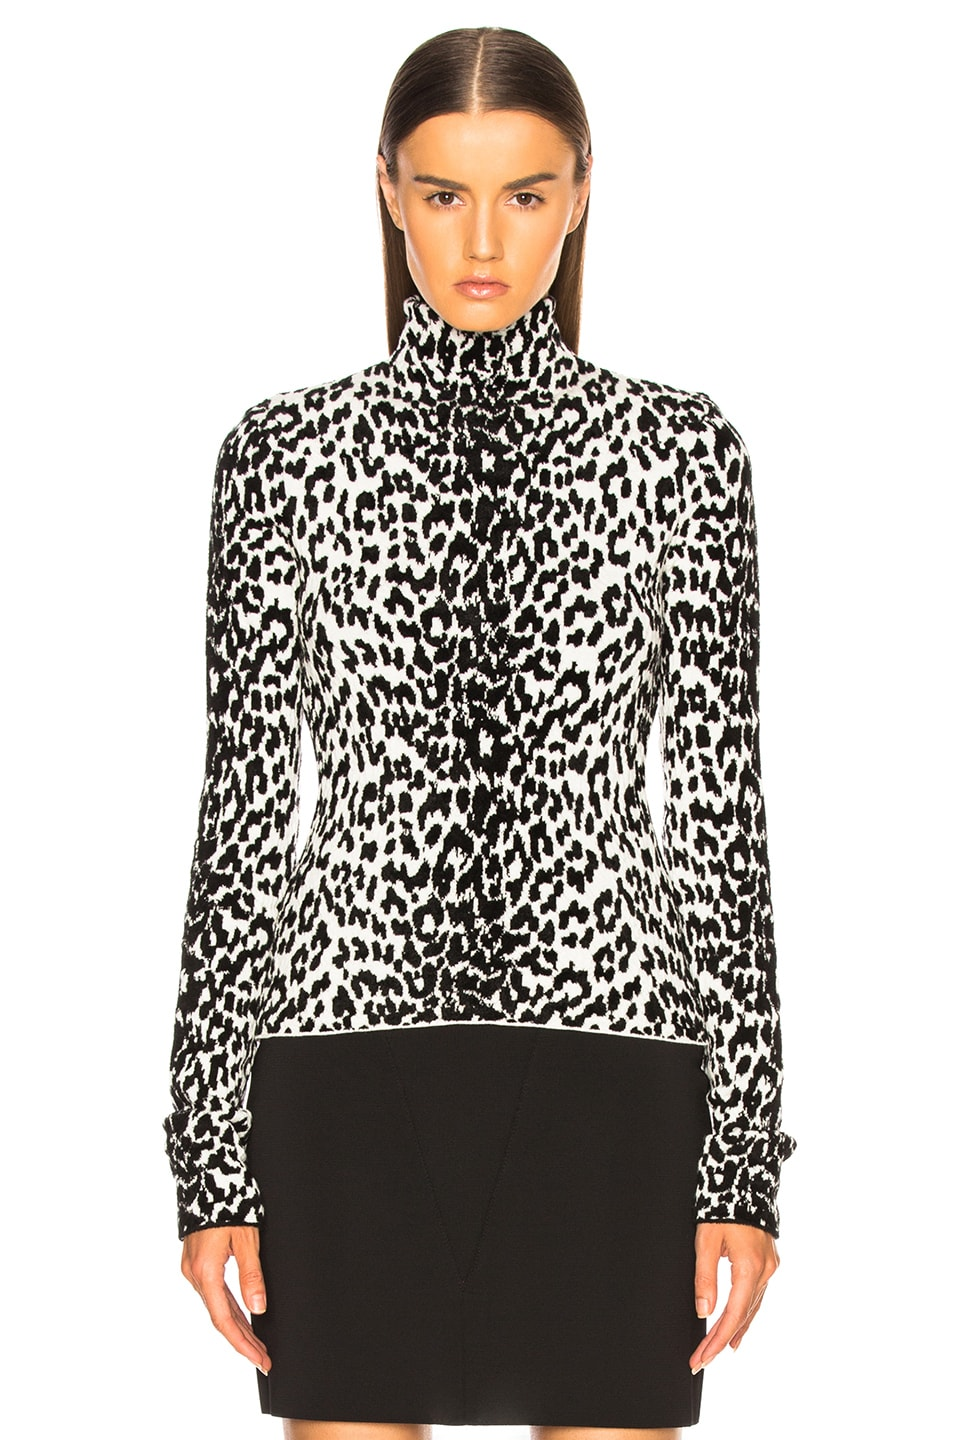 Image 2 of Givenchy Leopard Jacquard Sweater in Black & White